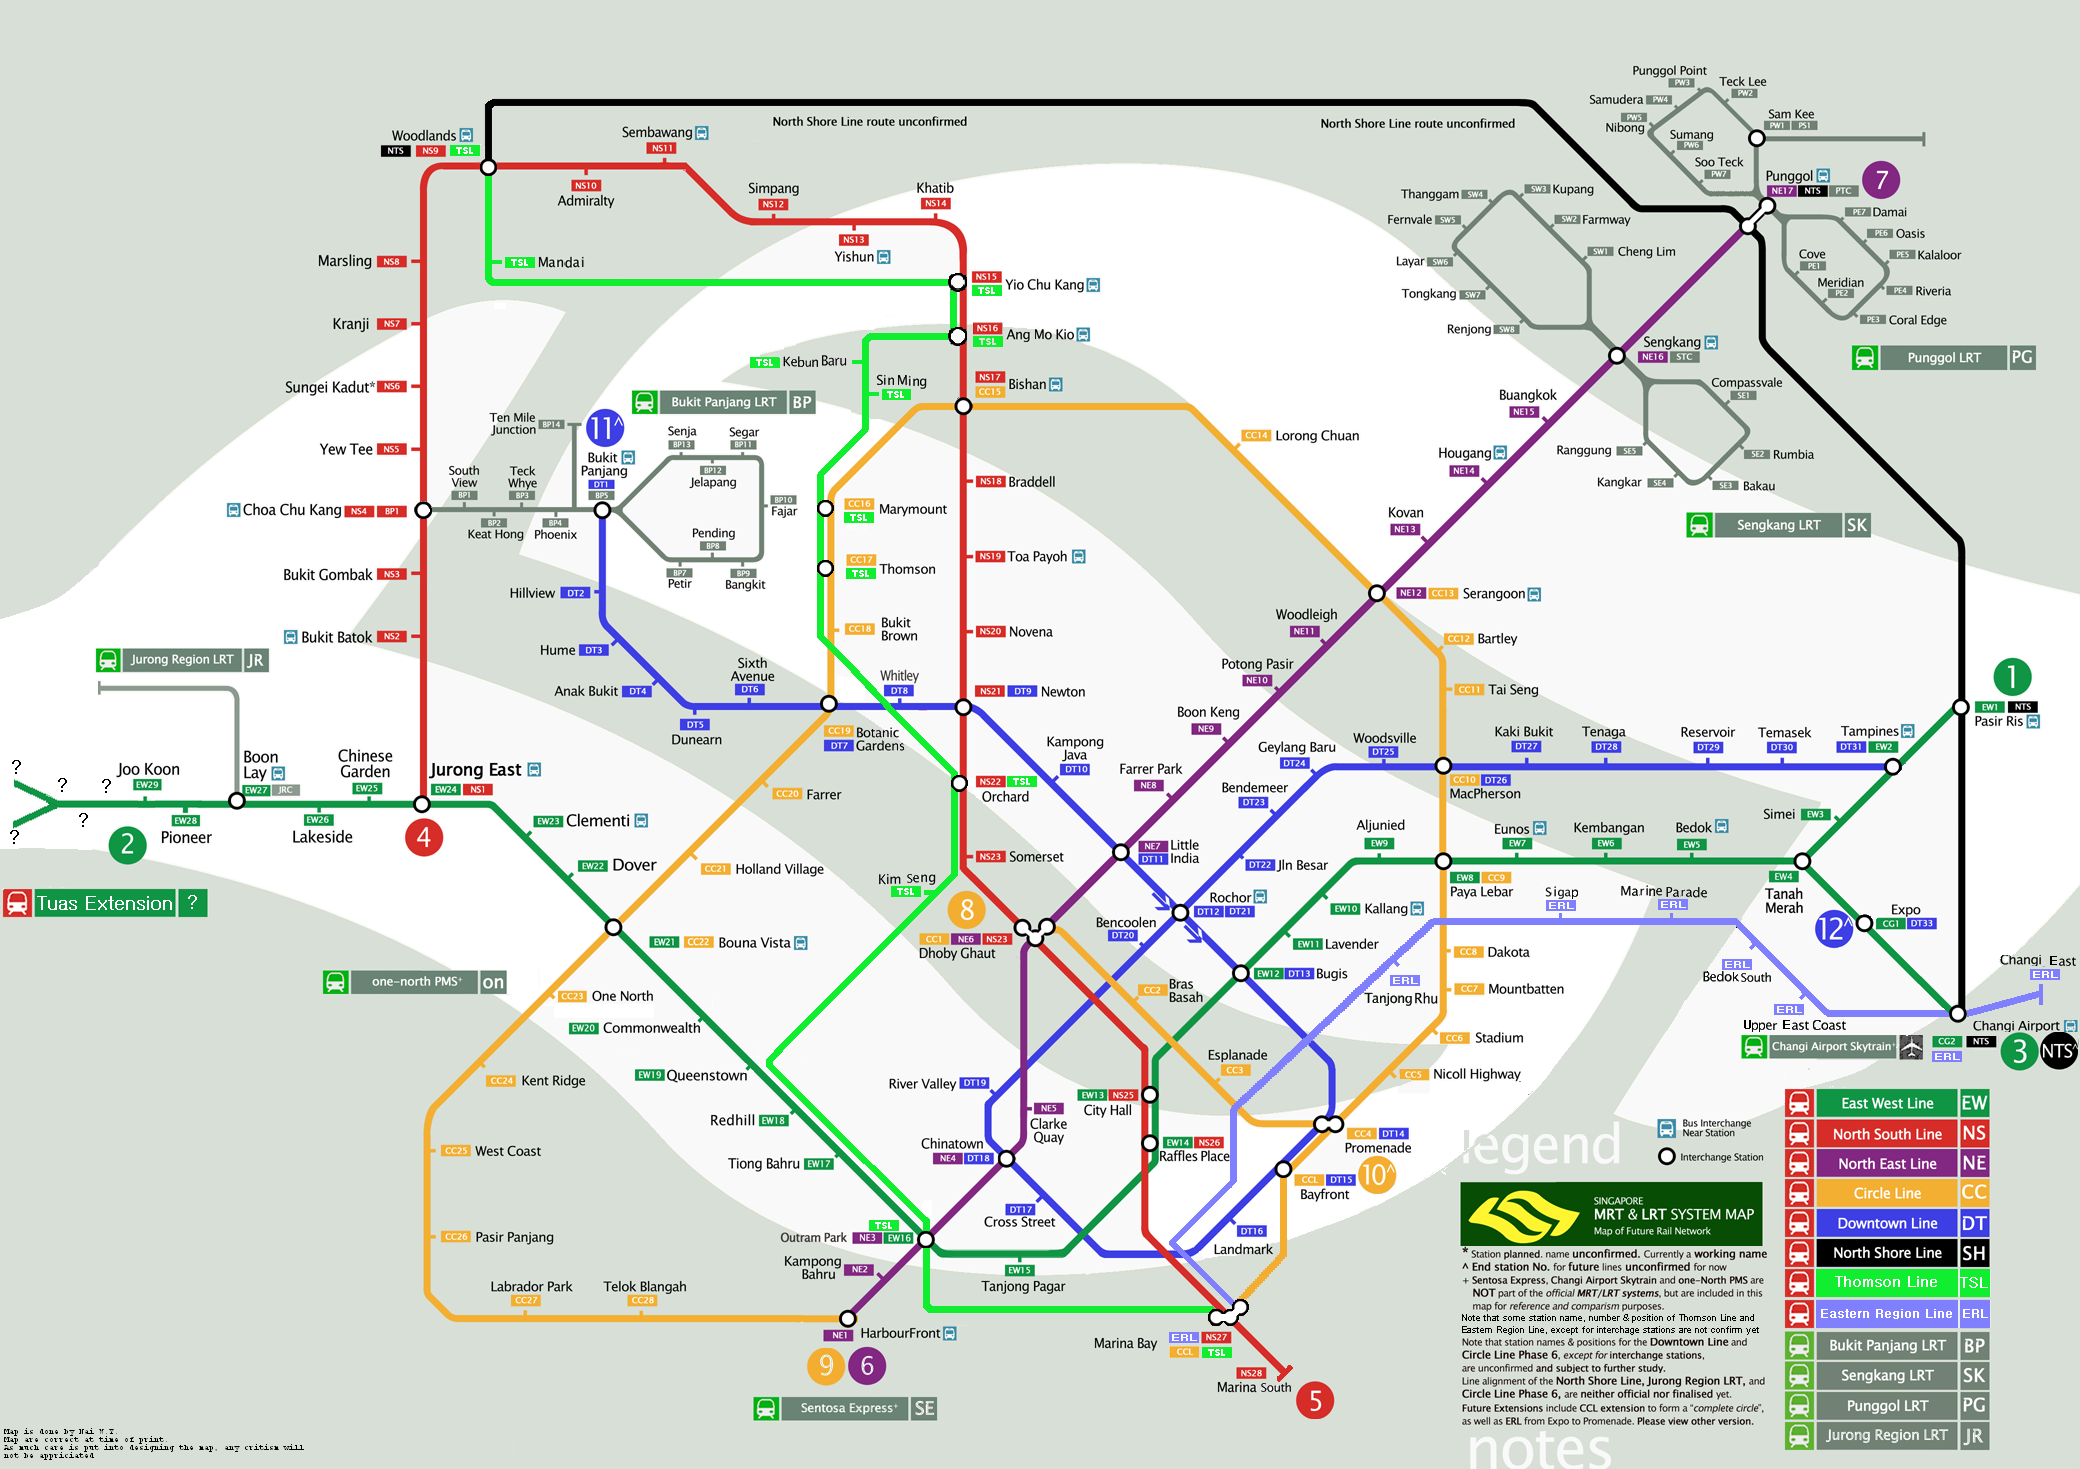 Singapore Future MRT/LRT Map (Updated)